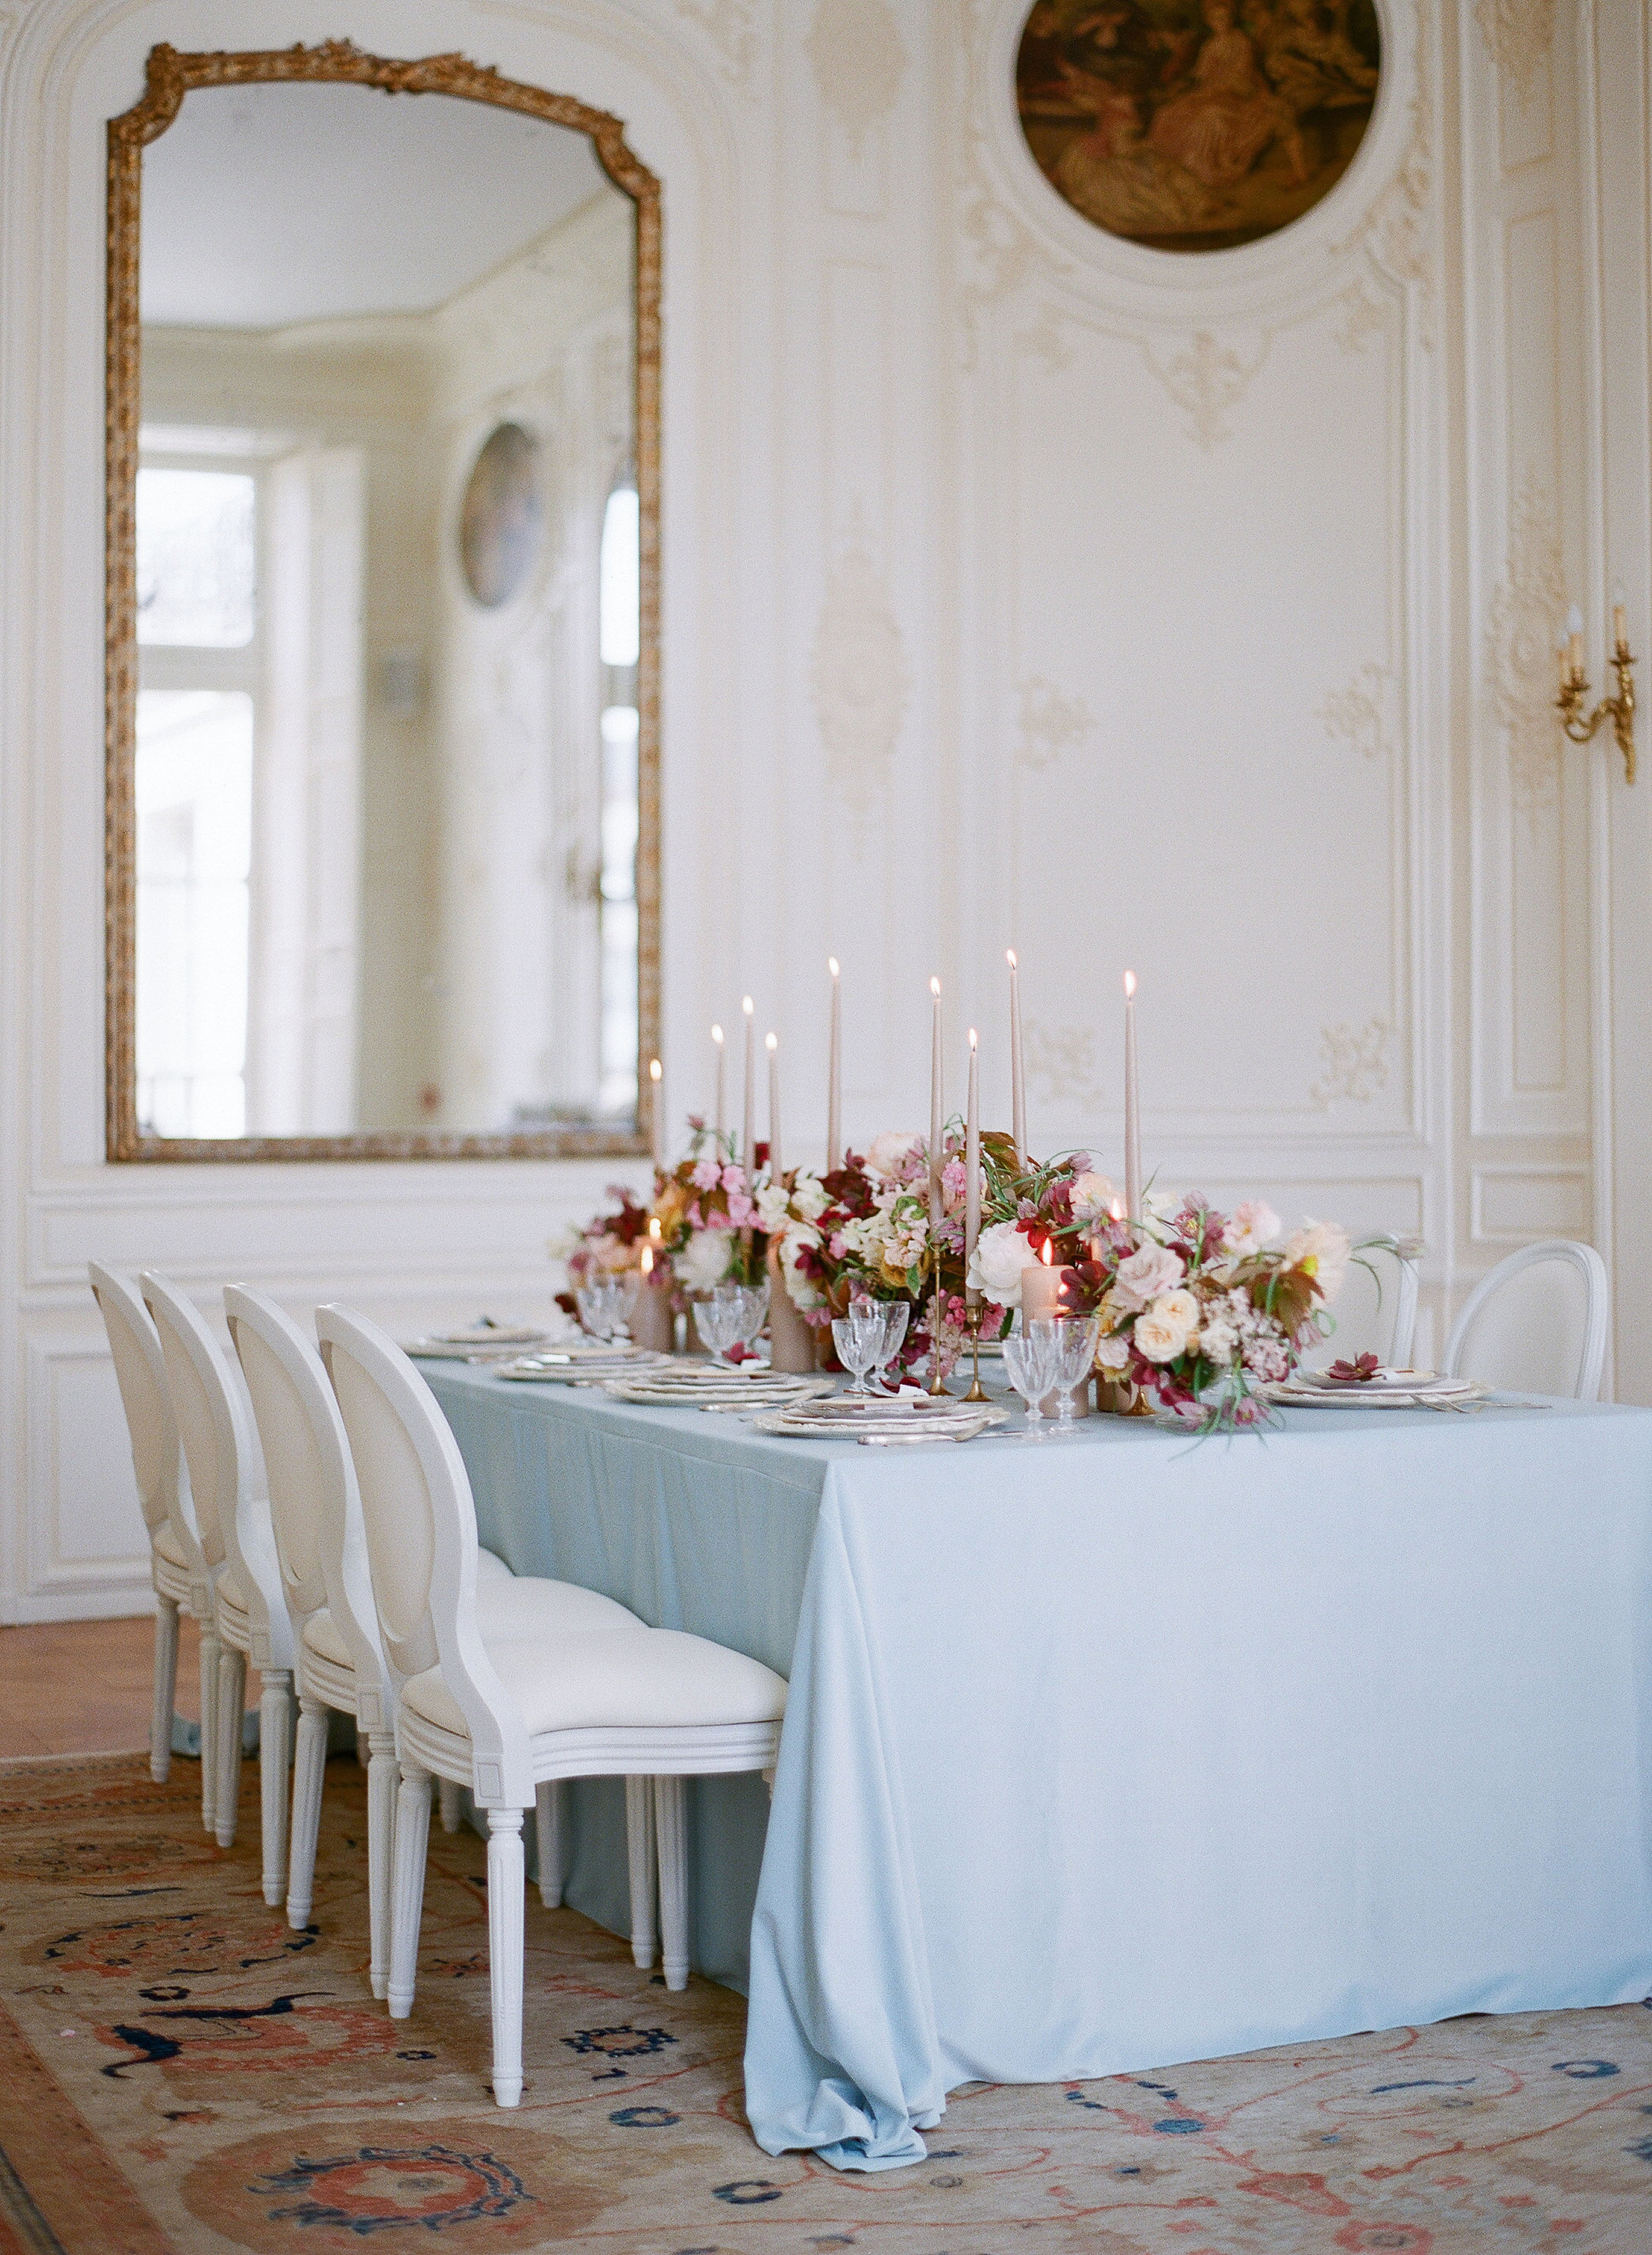 How about a little Chateau in France. Photo: Greg Finck